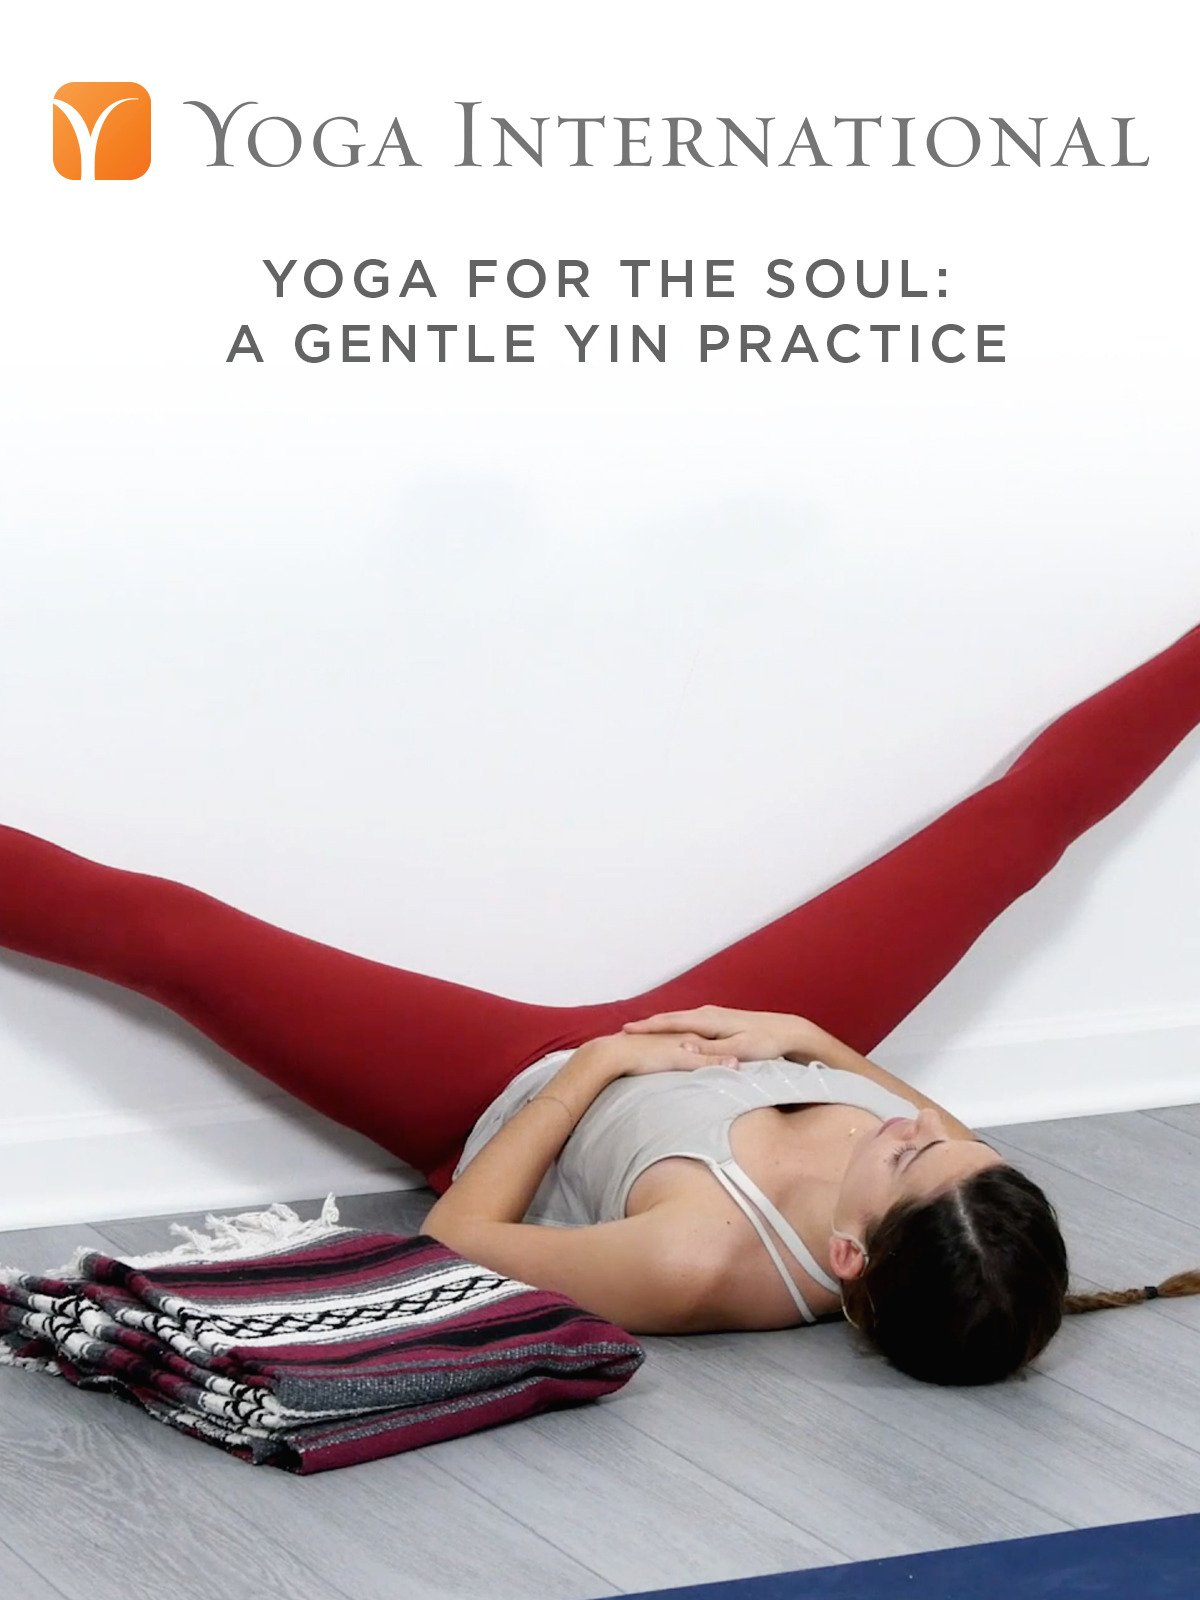 Yoga for the Soul: A Gentle Yin Practice on Amazon Prime Video UK